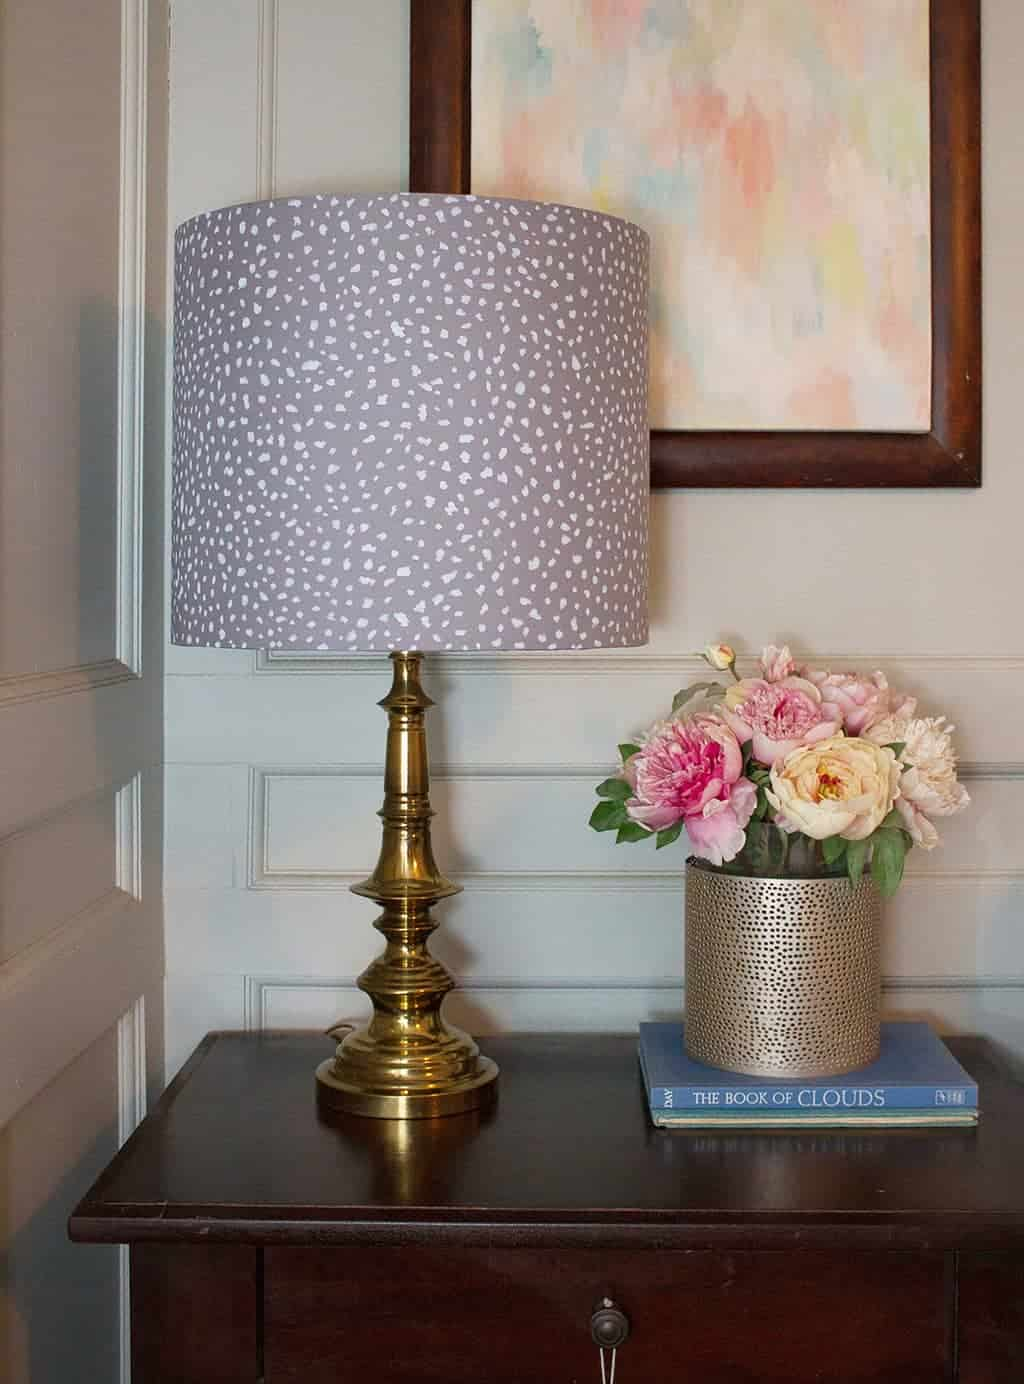 Make your own diy lamp shade from an i like that lamp kit audrey of oh so lovely blog shows you just how easy it is to make your mozeypictures Image collections